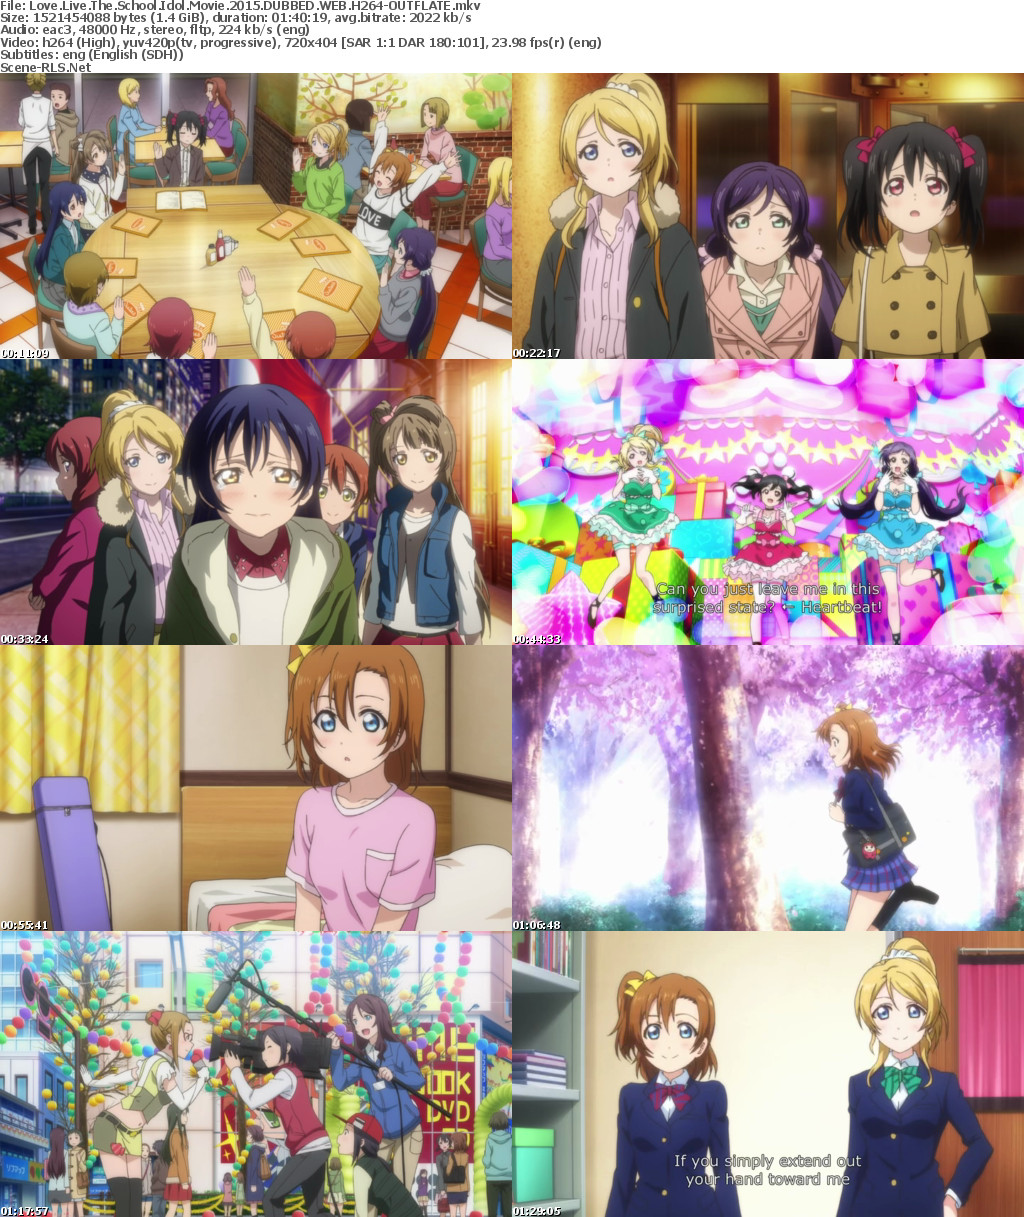 love live school idol movie download eng sub